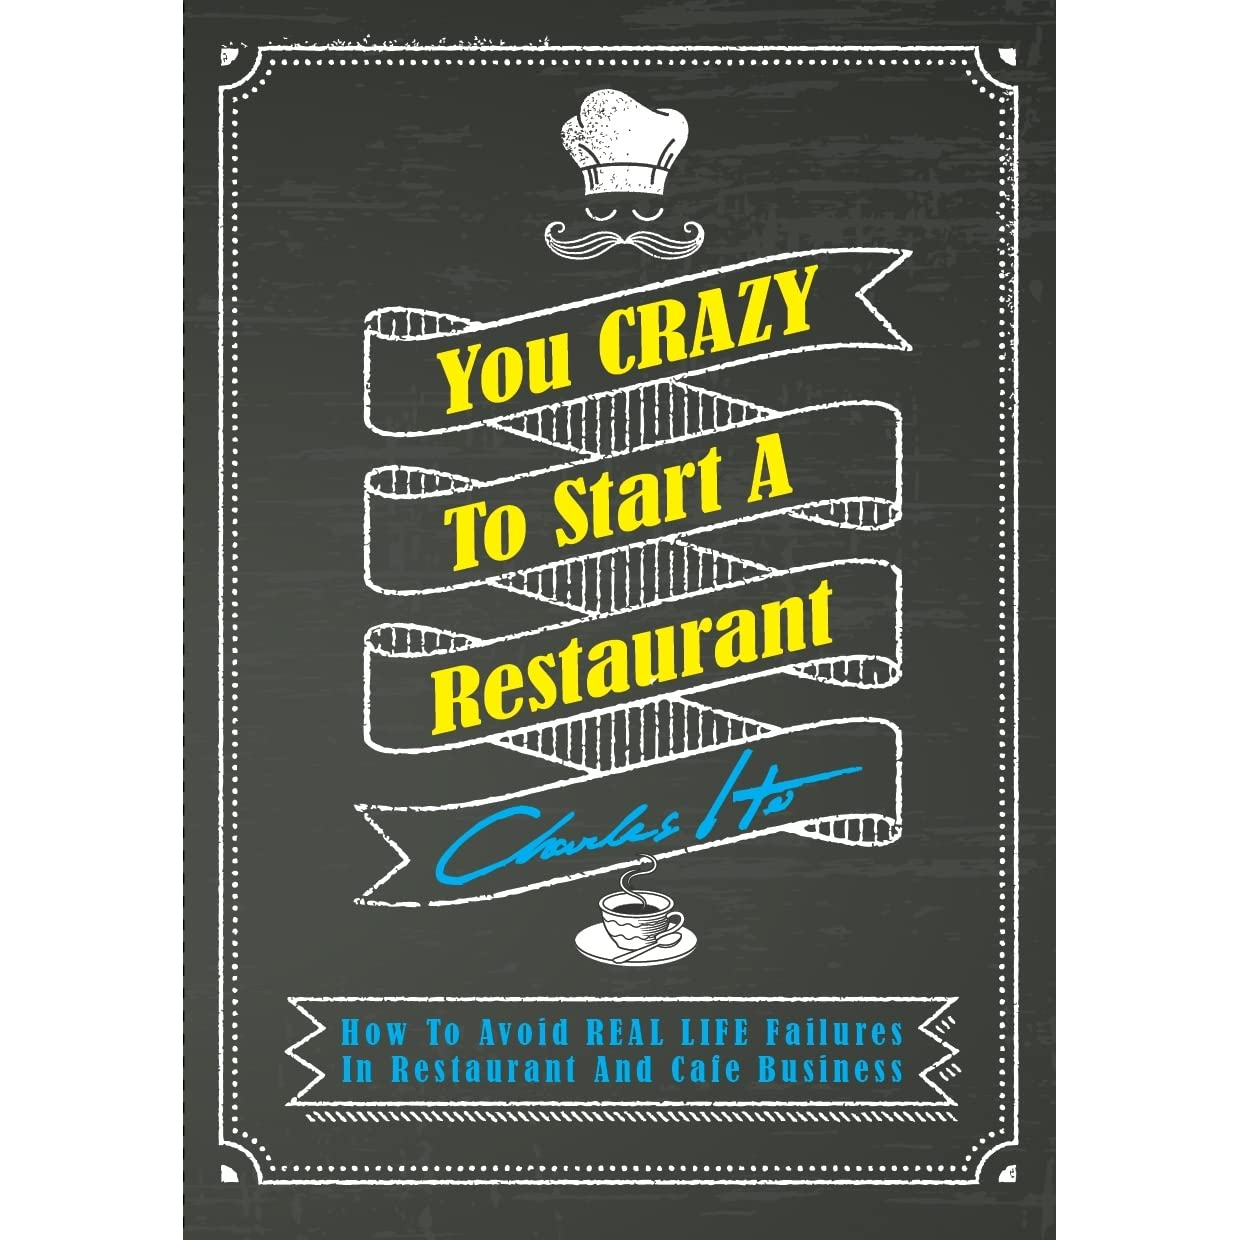 You Crazy To Start A Restaurant By Charles Ho